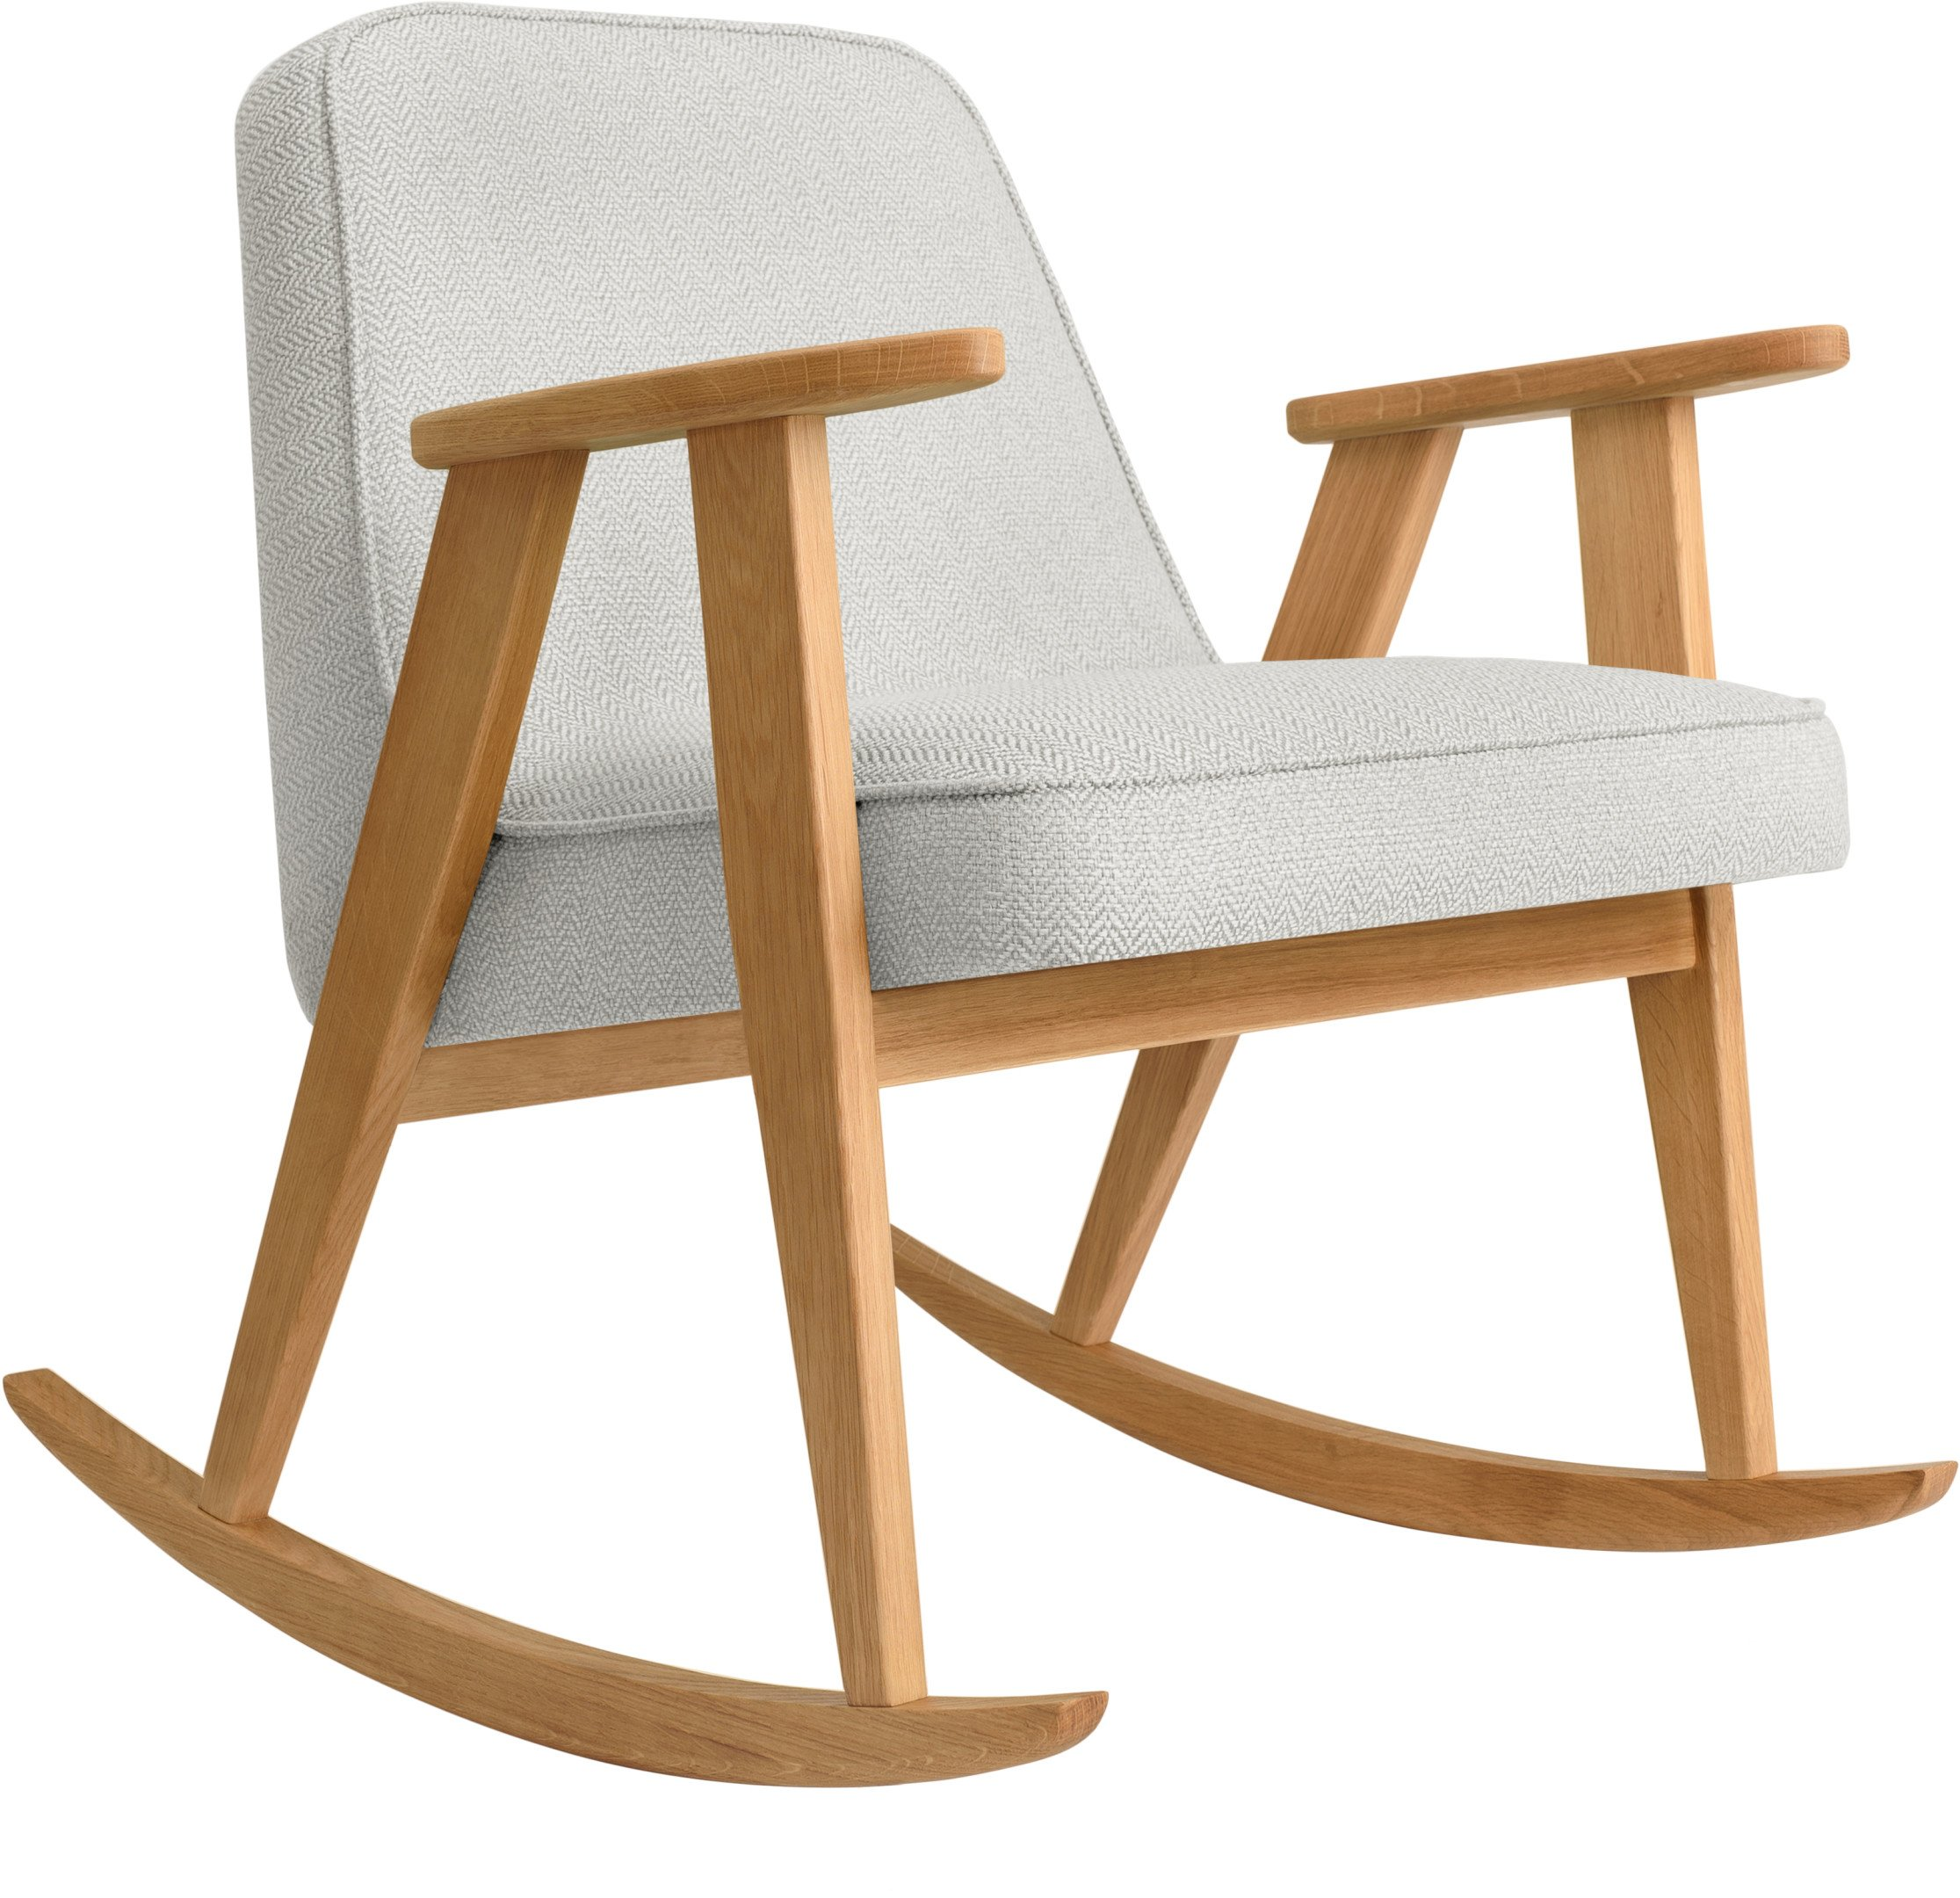 366 Rocking Chair Tweed White (natural oak) by Józef Chierowski